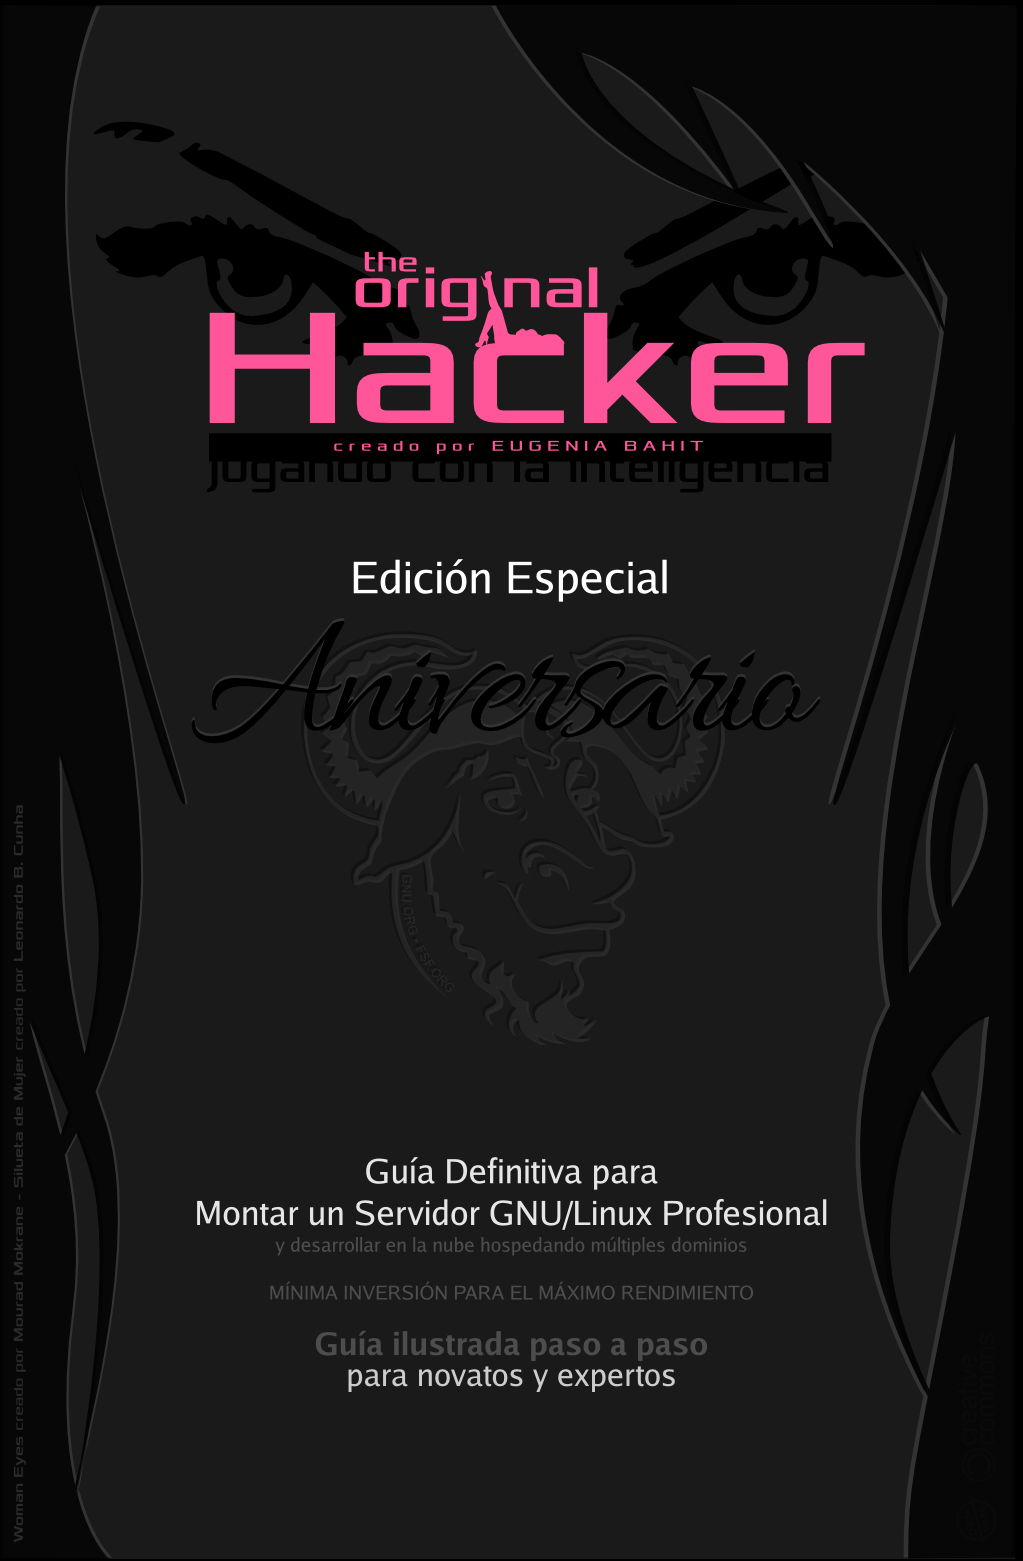 The Original Hacker Edición Aniversario